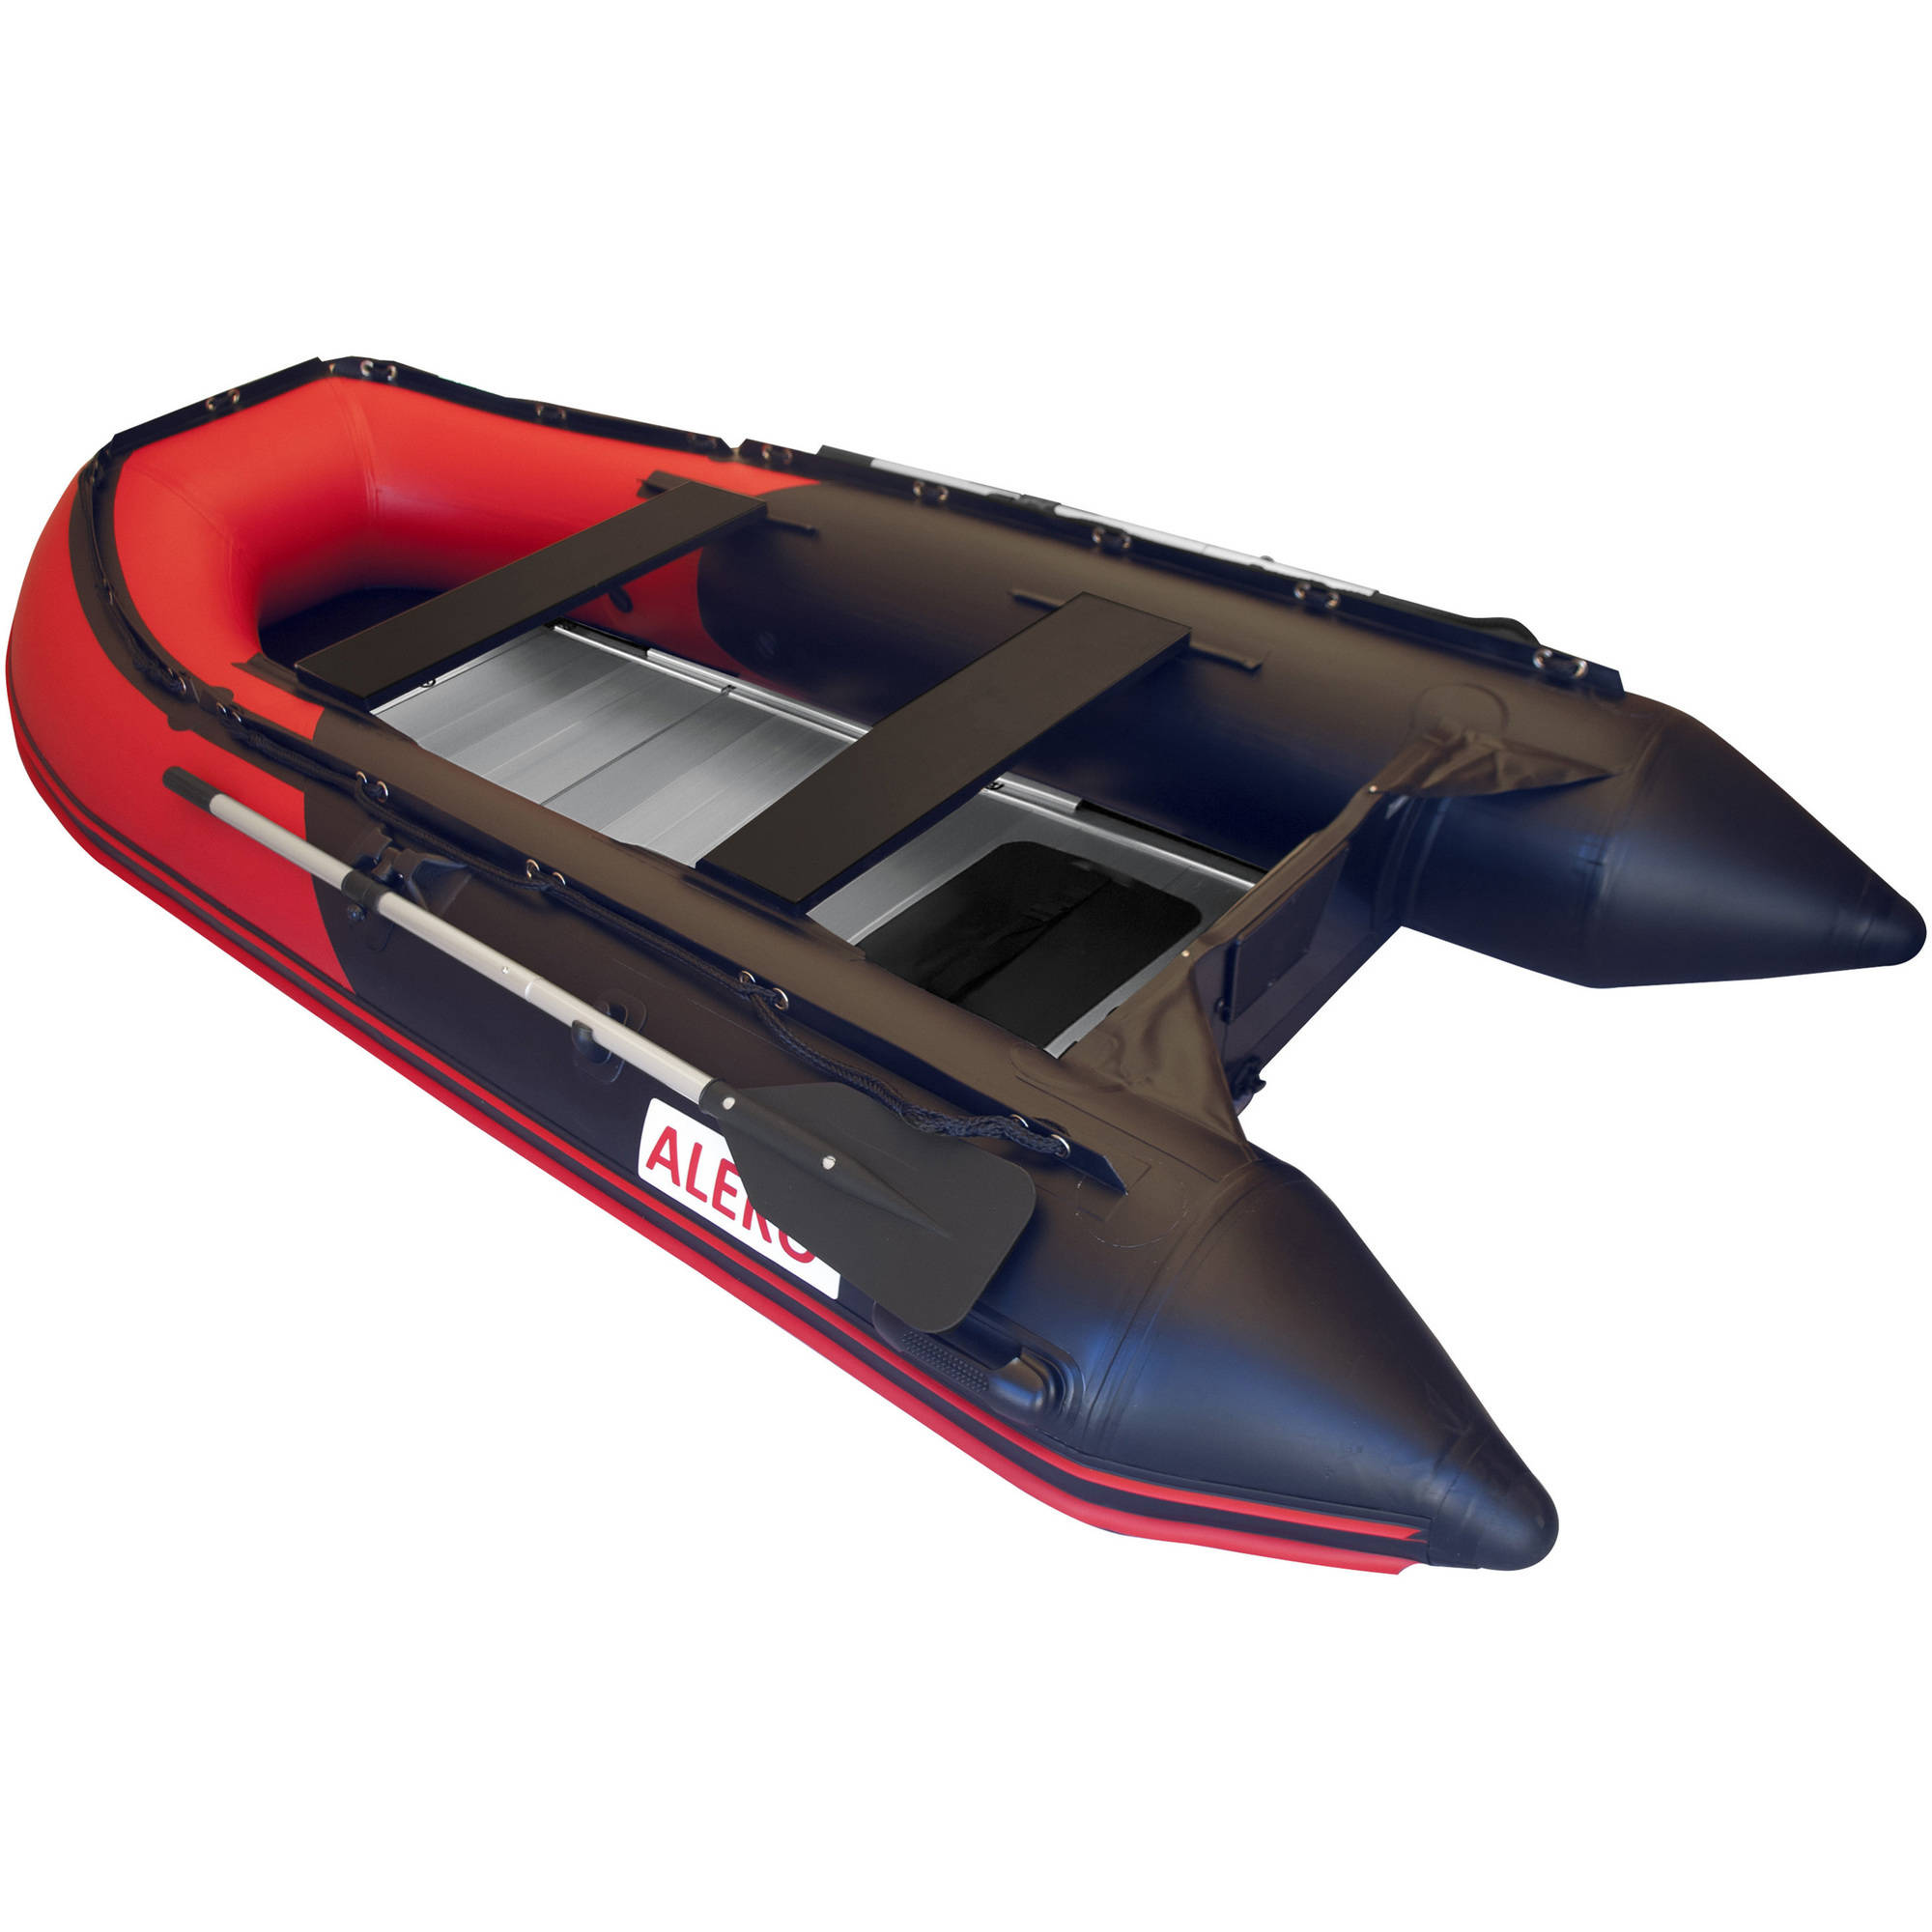 "ALEKO Boat 320 150cm 10'5"" Inflatable Boat with Aluminum Floor, Red and Black by ALEKO"